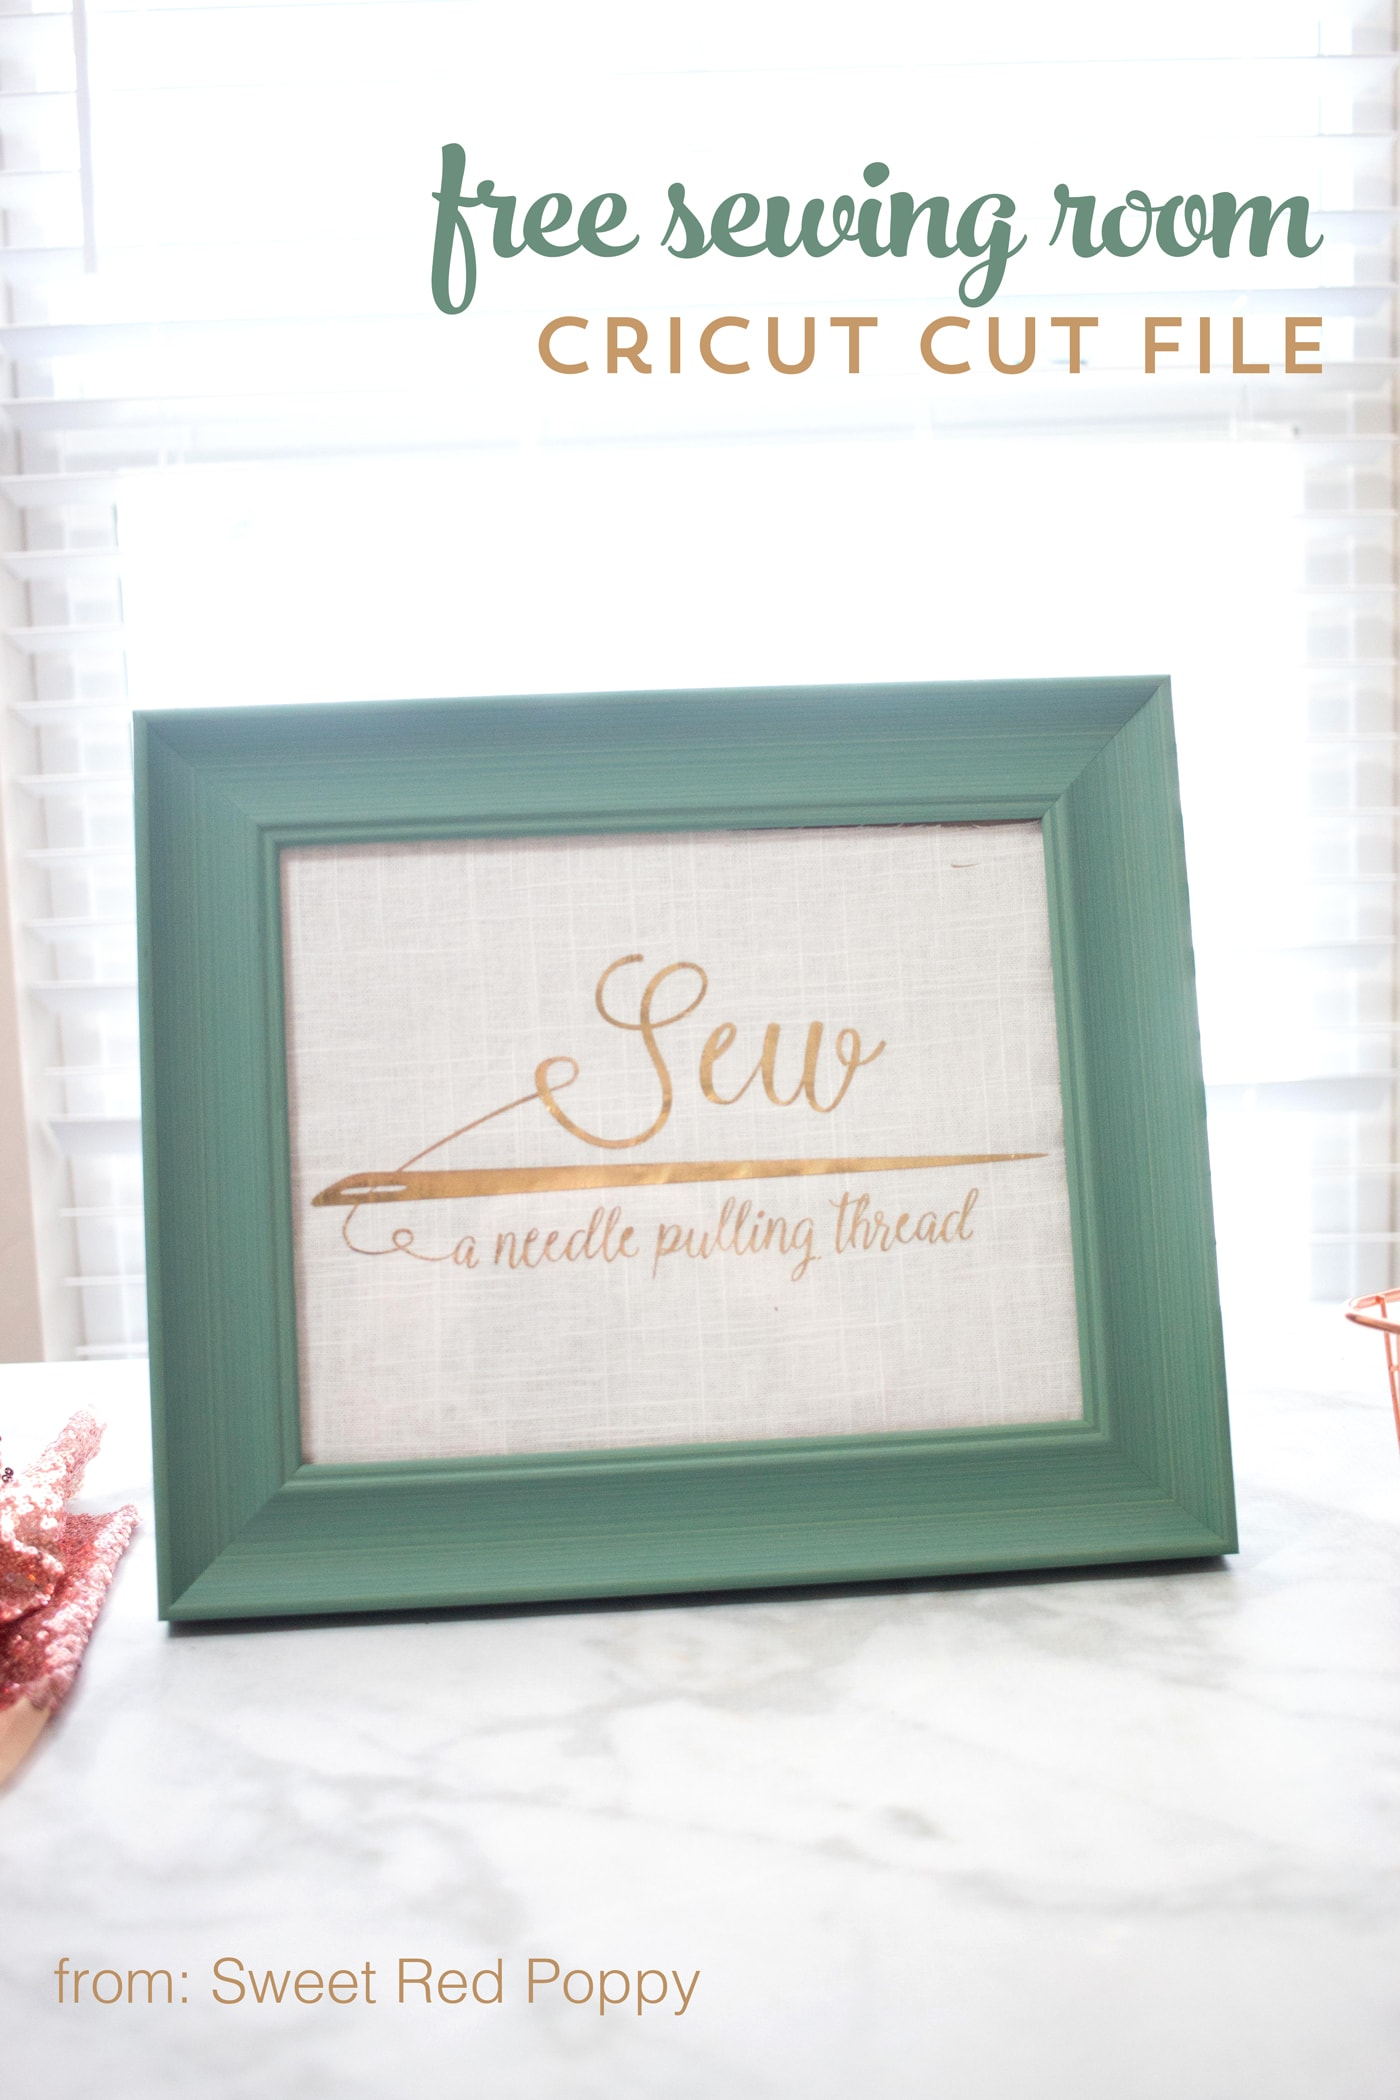 Free Sewing SVG files for Cricut Machines- a cute saying for your sewing room decor!